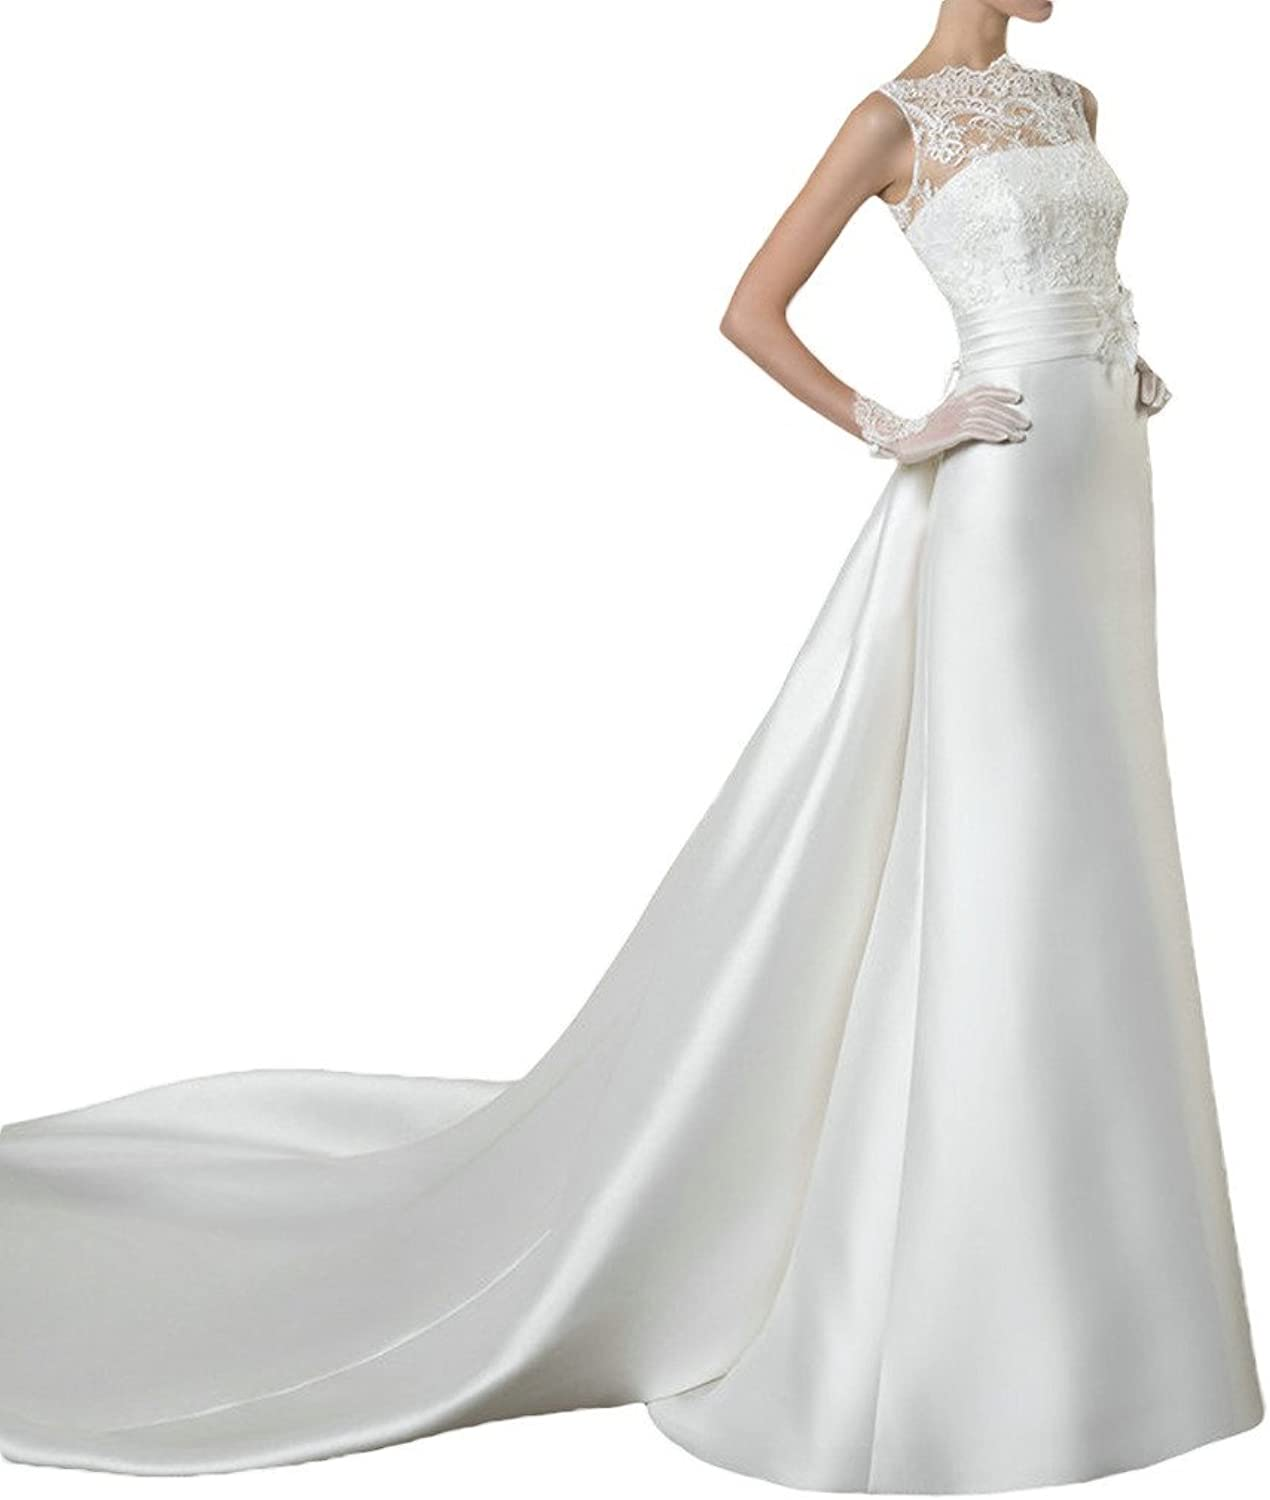 Avril Dress Satin and Lace Covered Button Bateau Bow Wedding Dress with Watteau